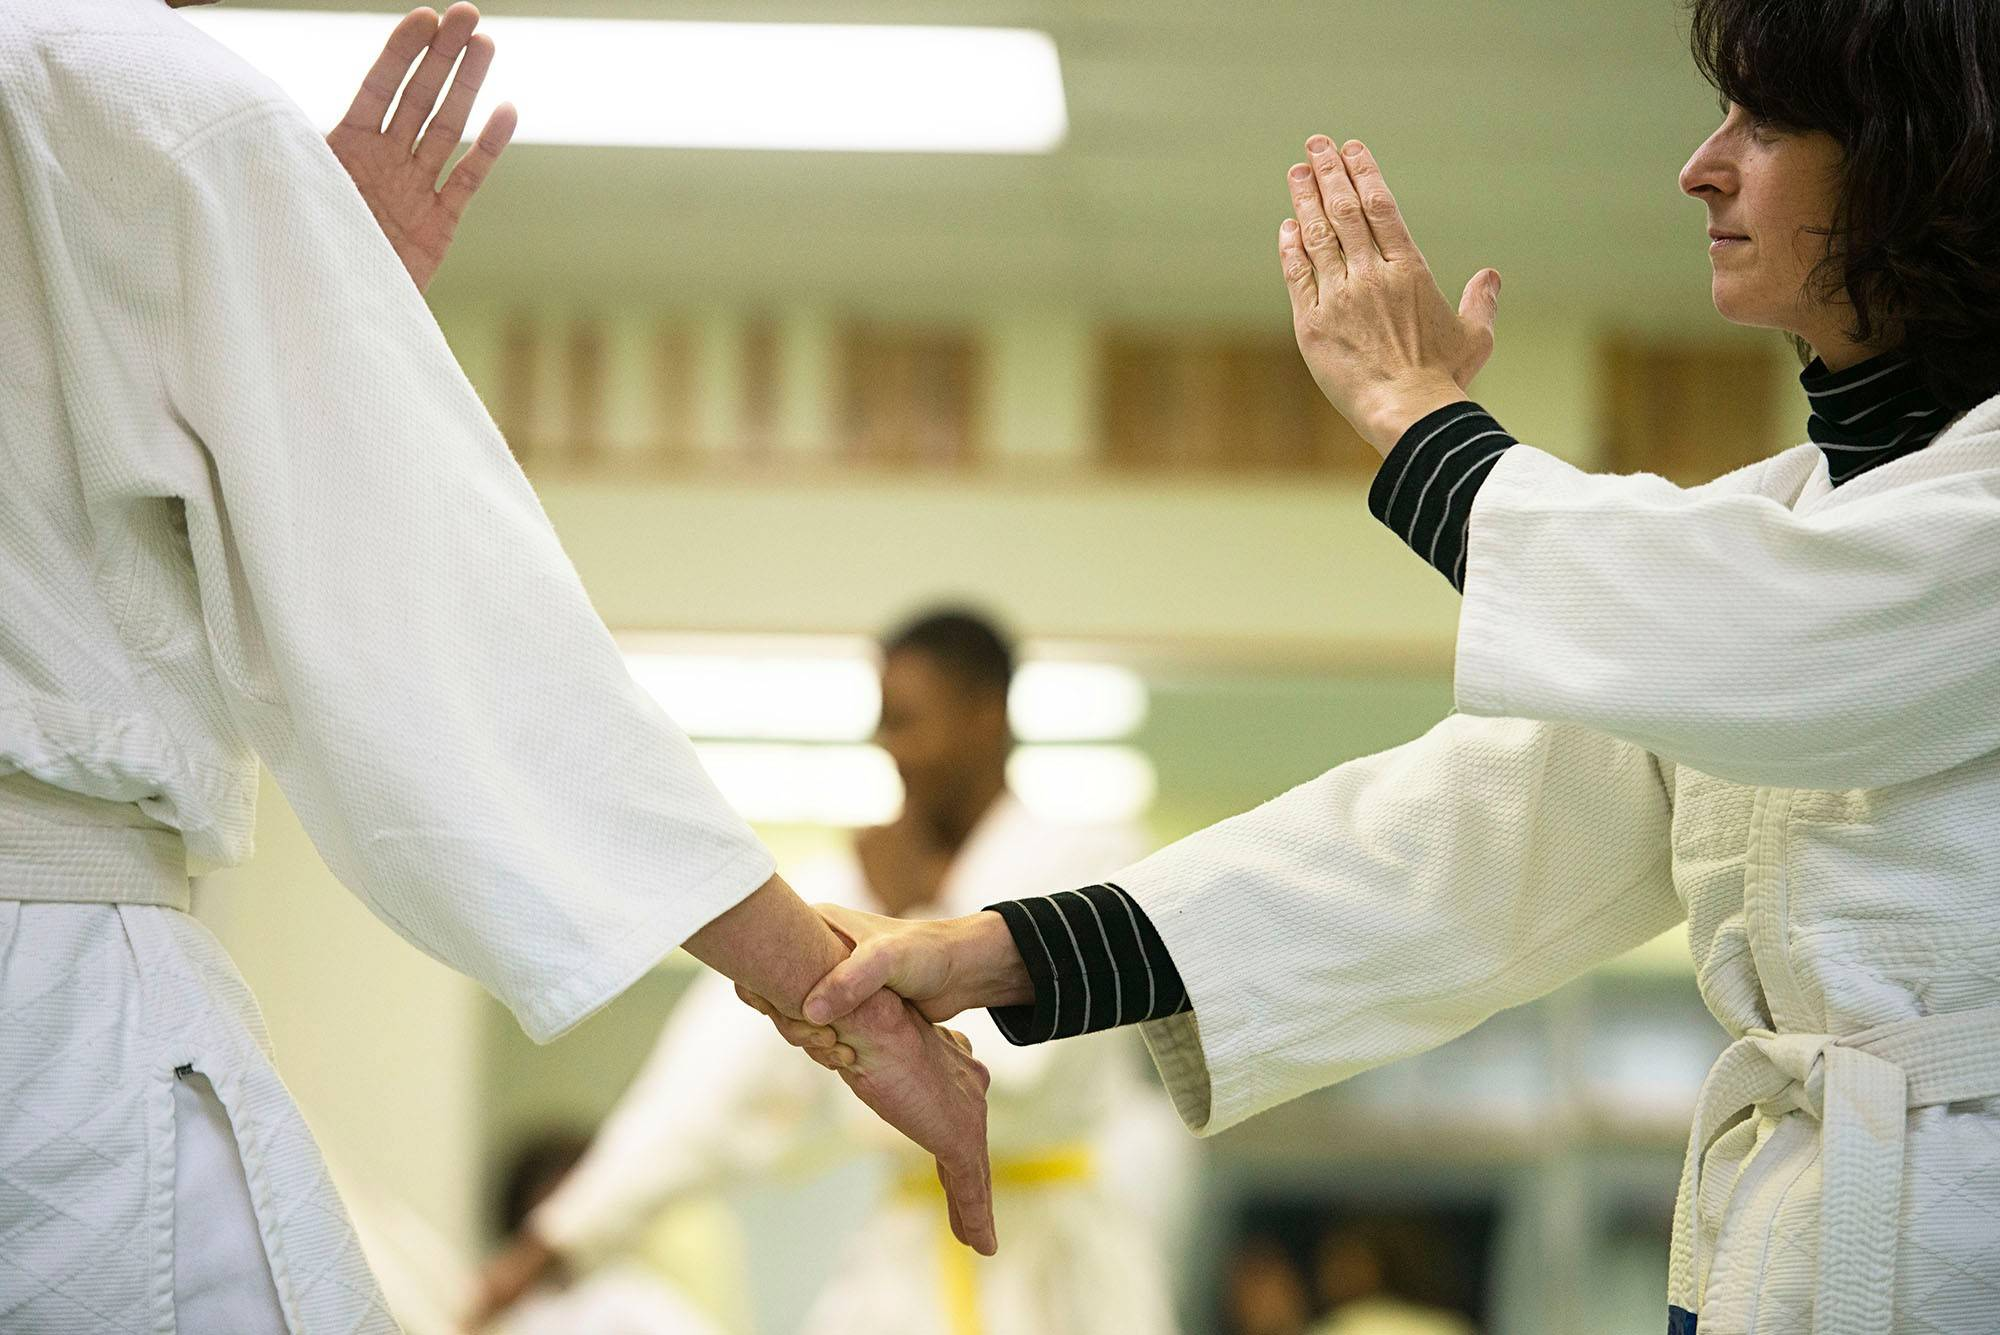 Barry Wagner, left and Jess Williams spar in an aikido class at D.C. Aikido in Washington.